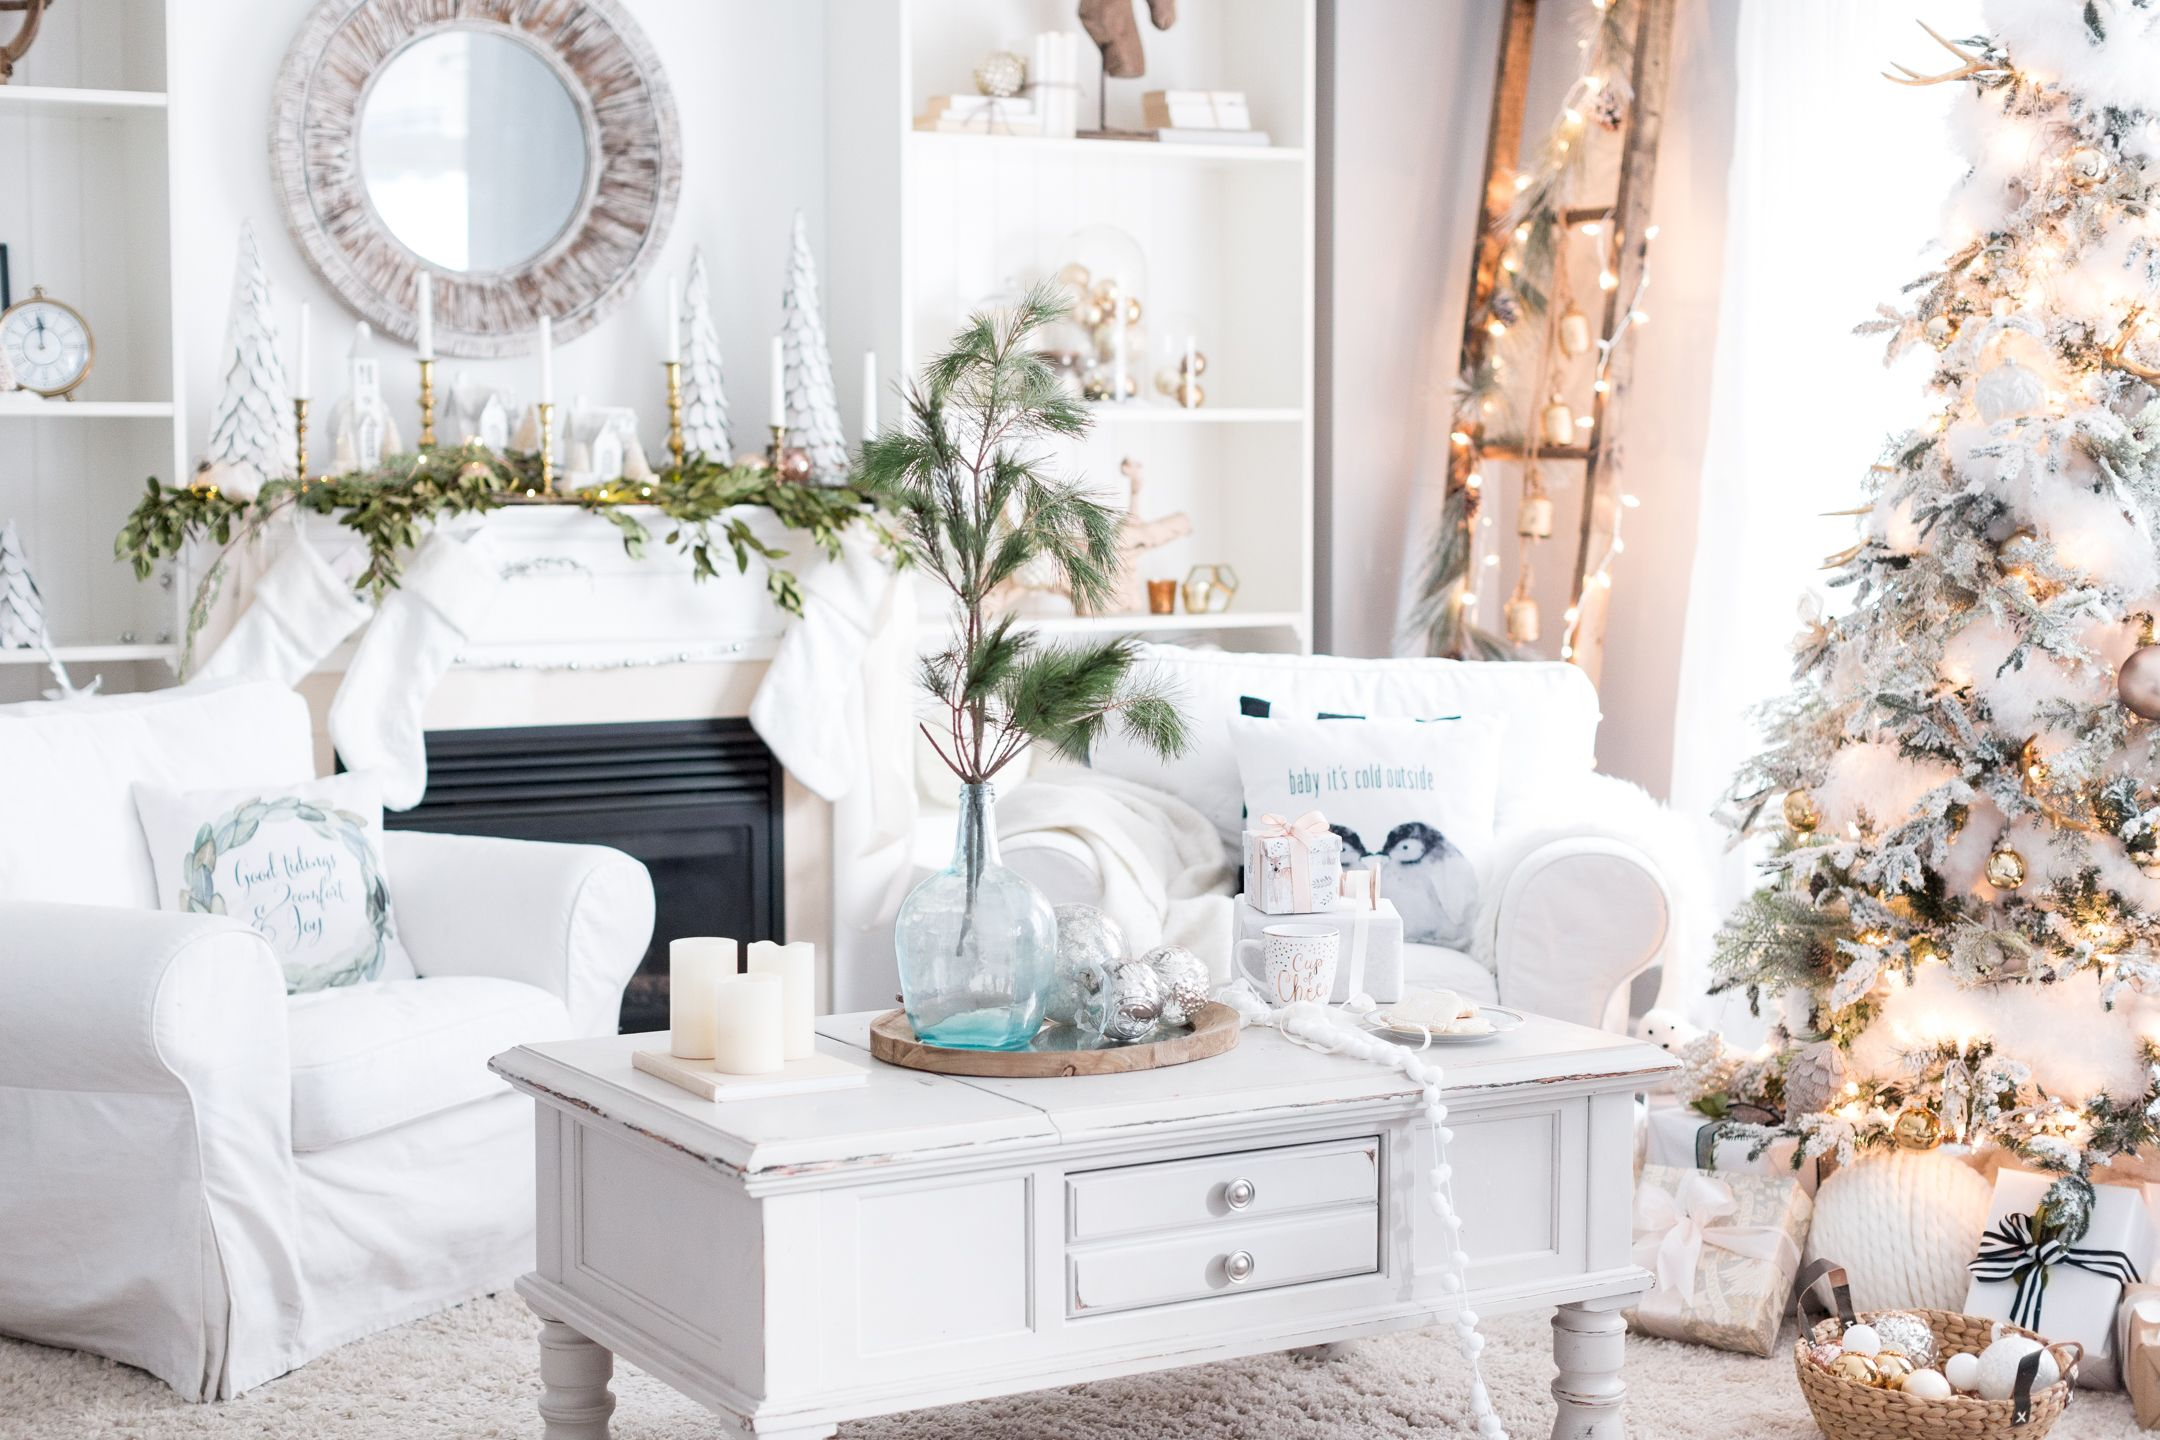 Delightful Holiday Decor Small Space